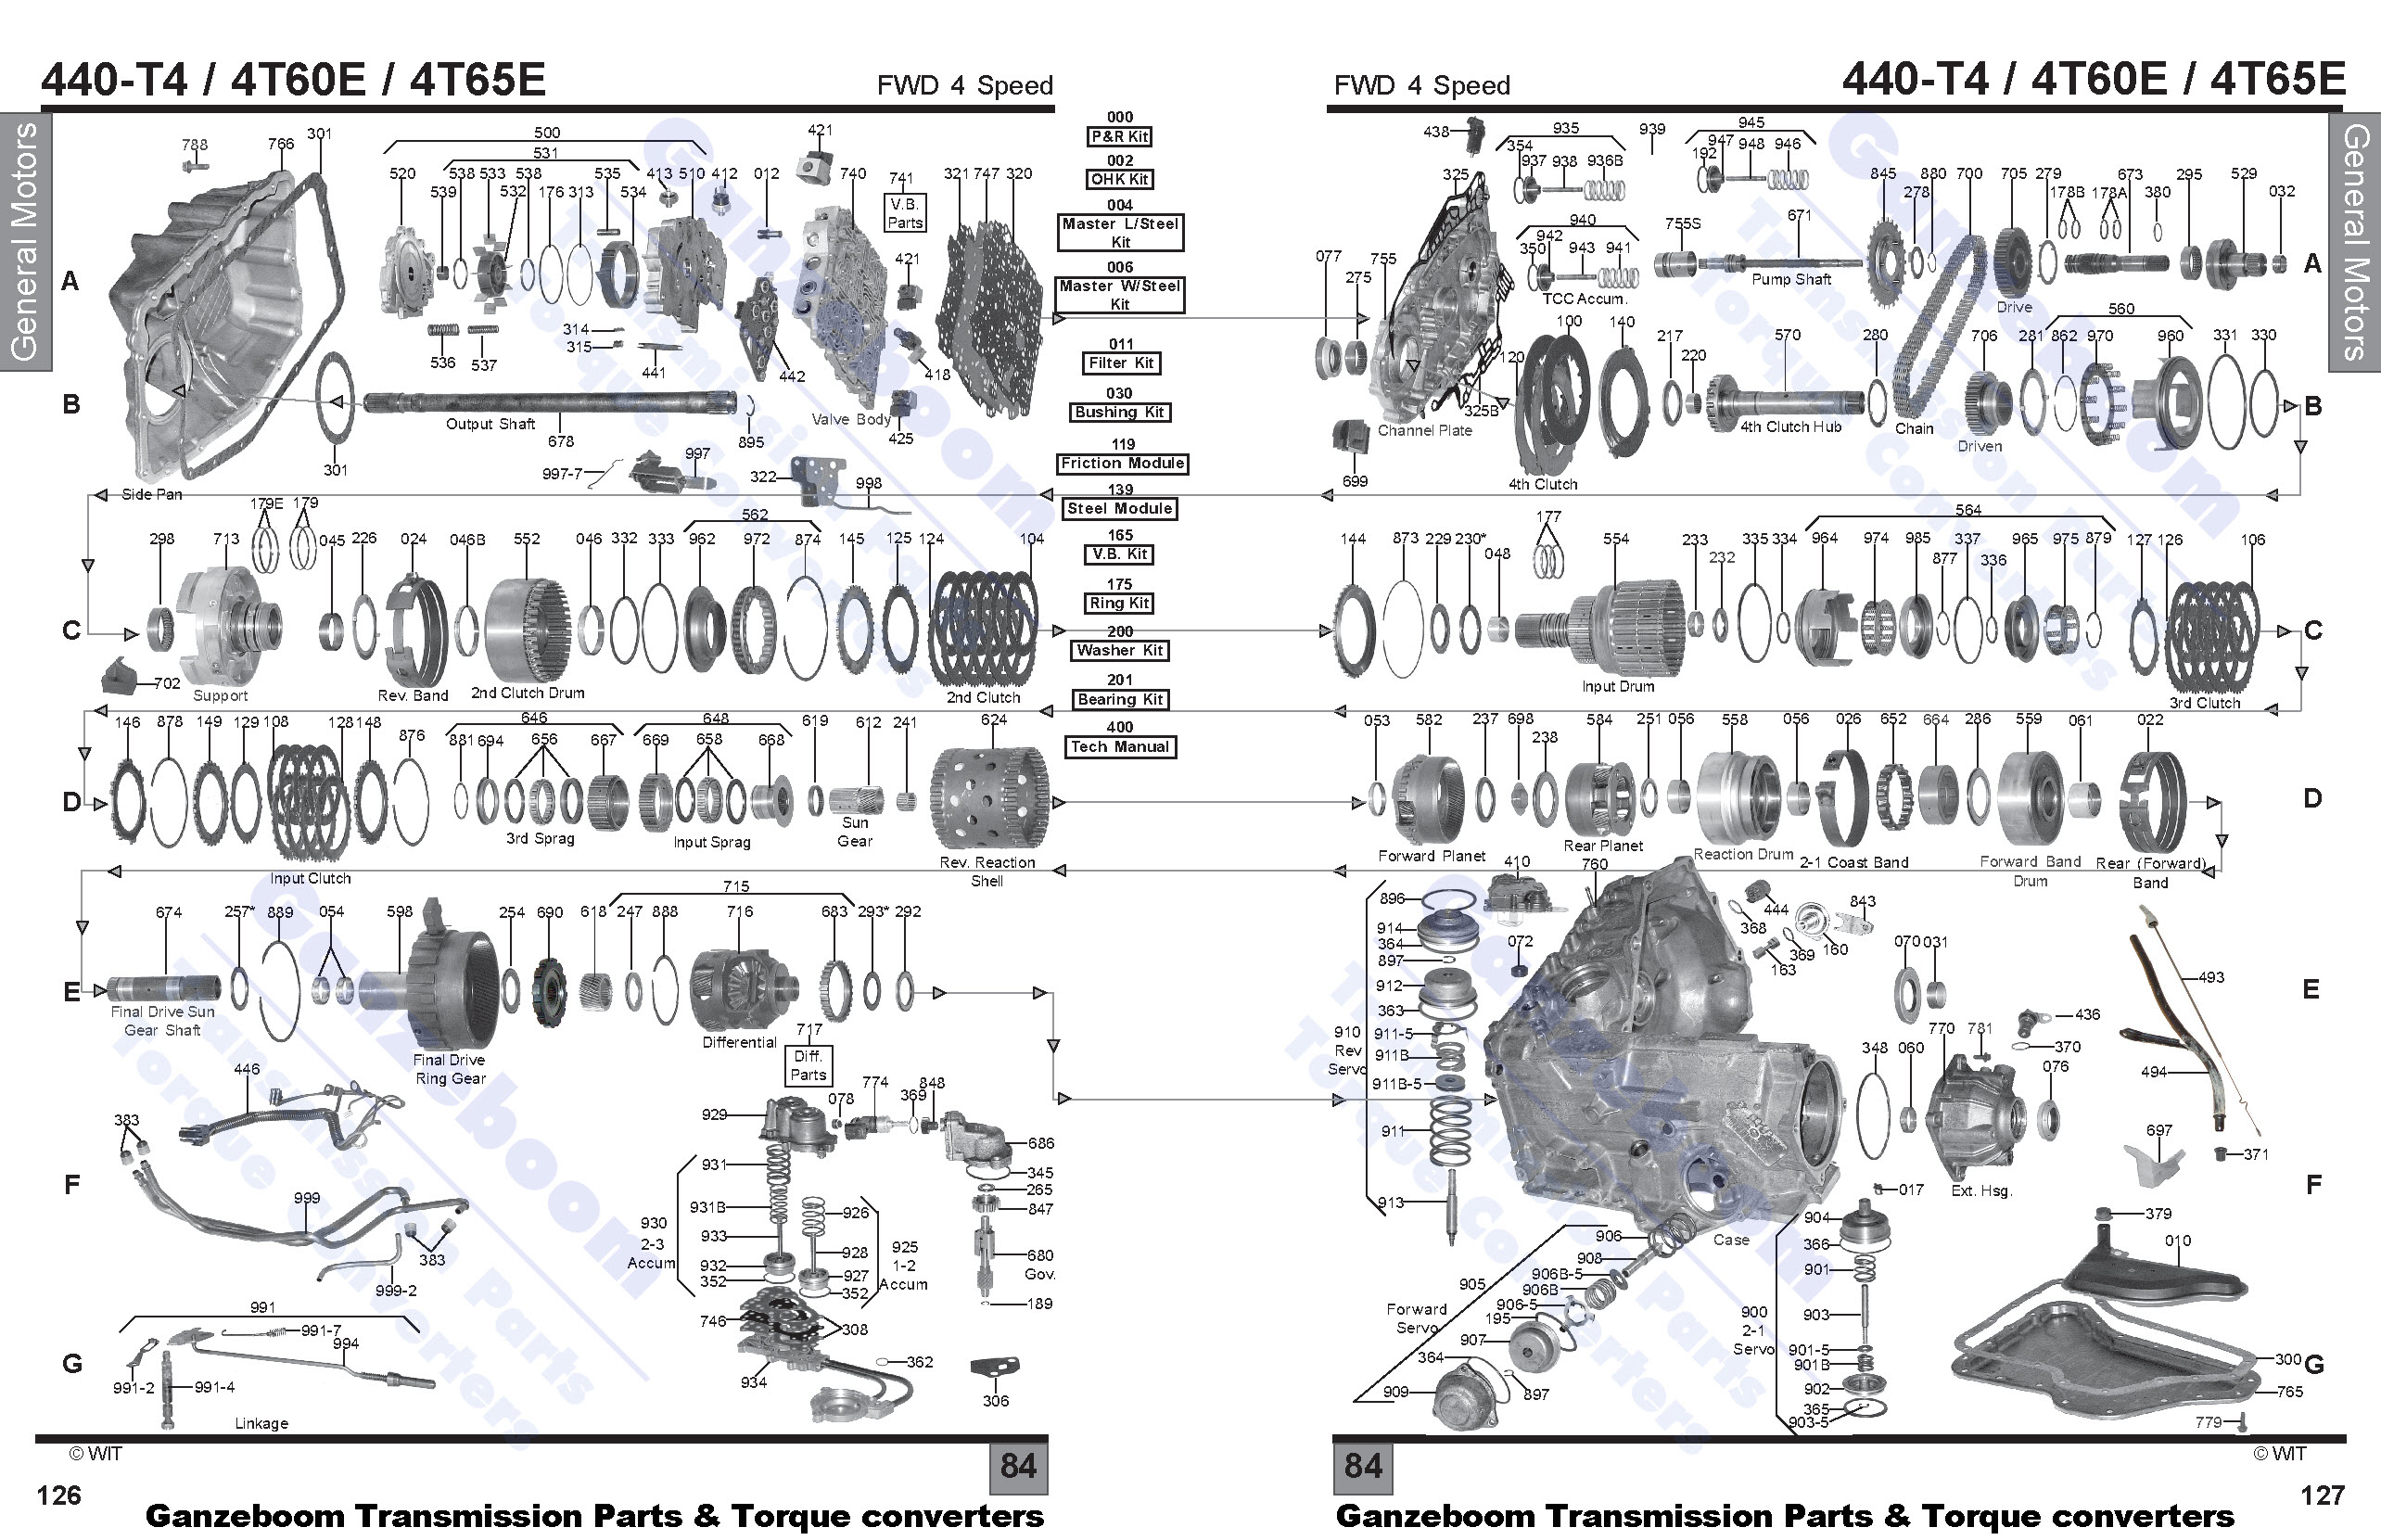 4t65e Transmission Diagram. Diagram. Wiring Diagram Images